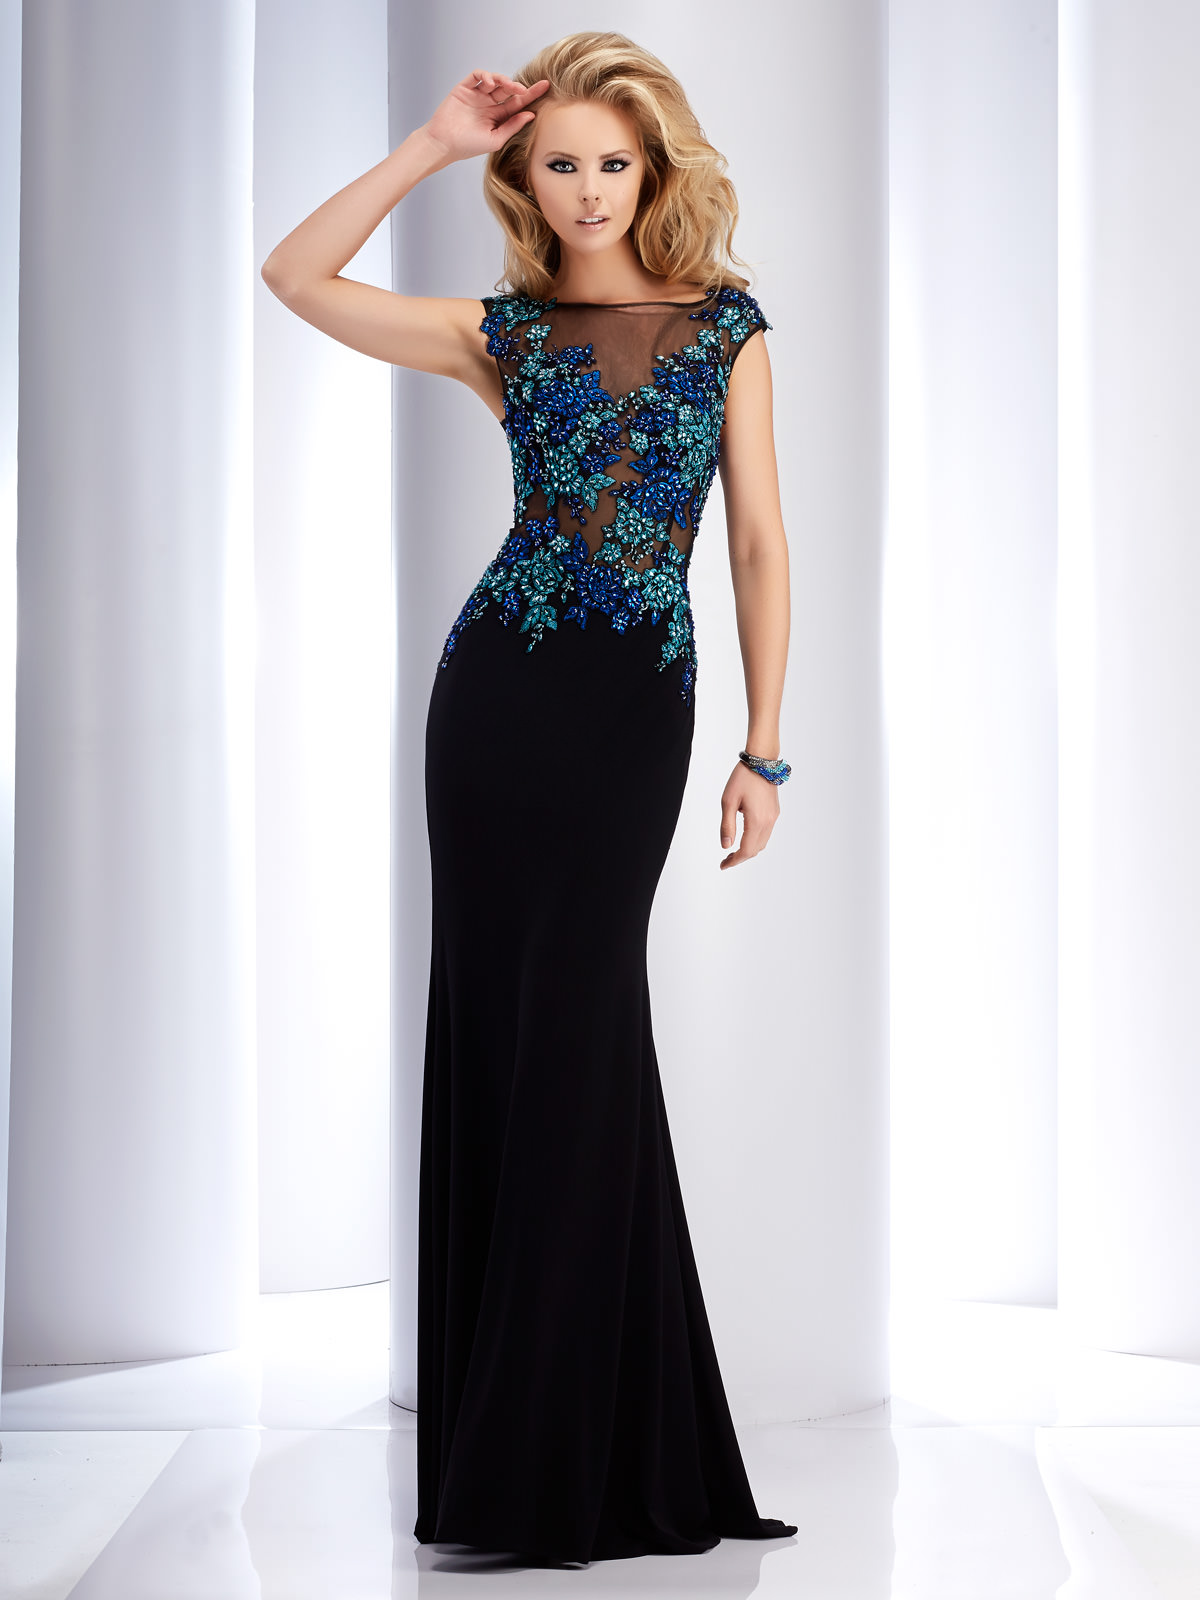 Clarisse 4749 Couture Dress Promgirl Net